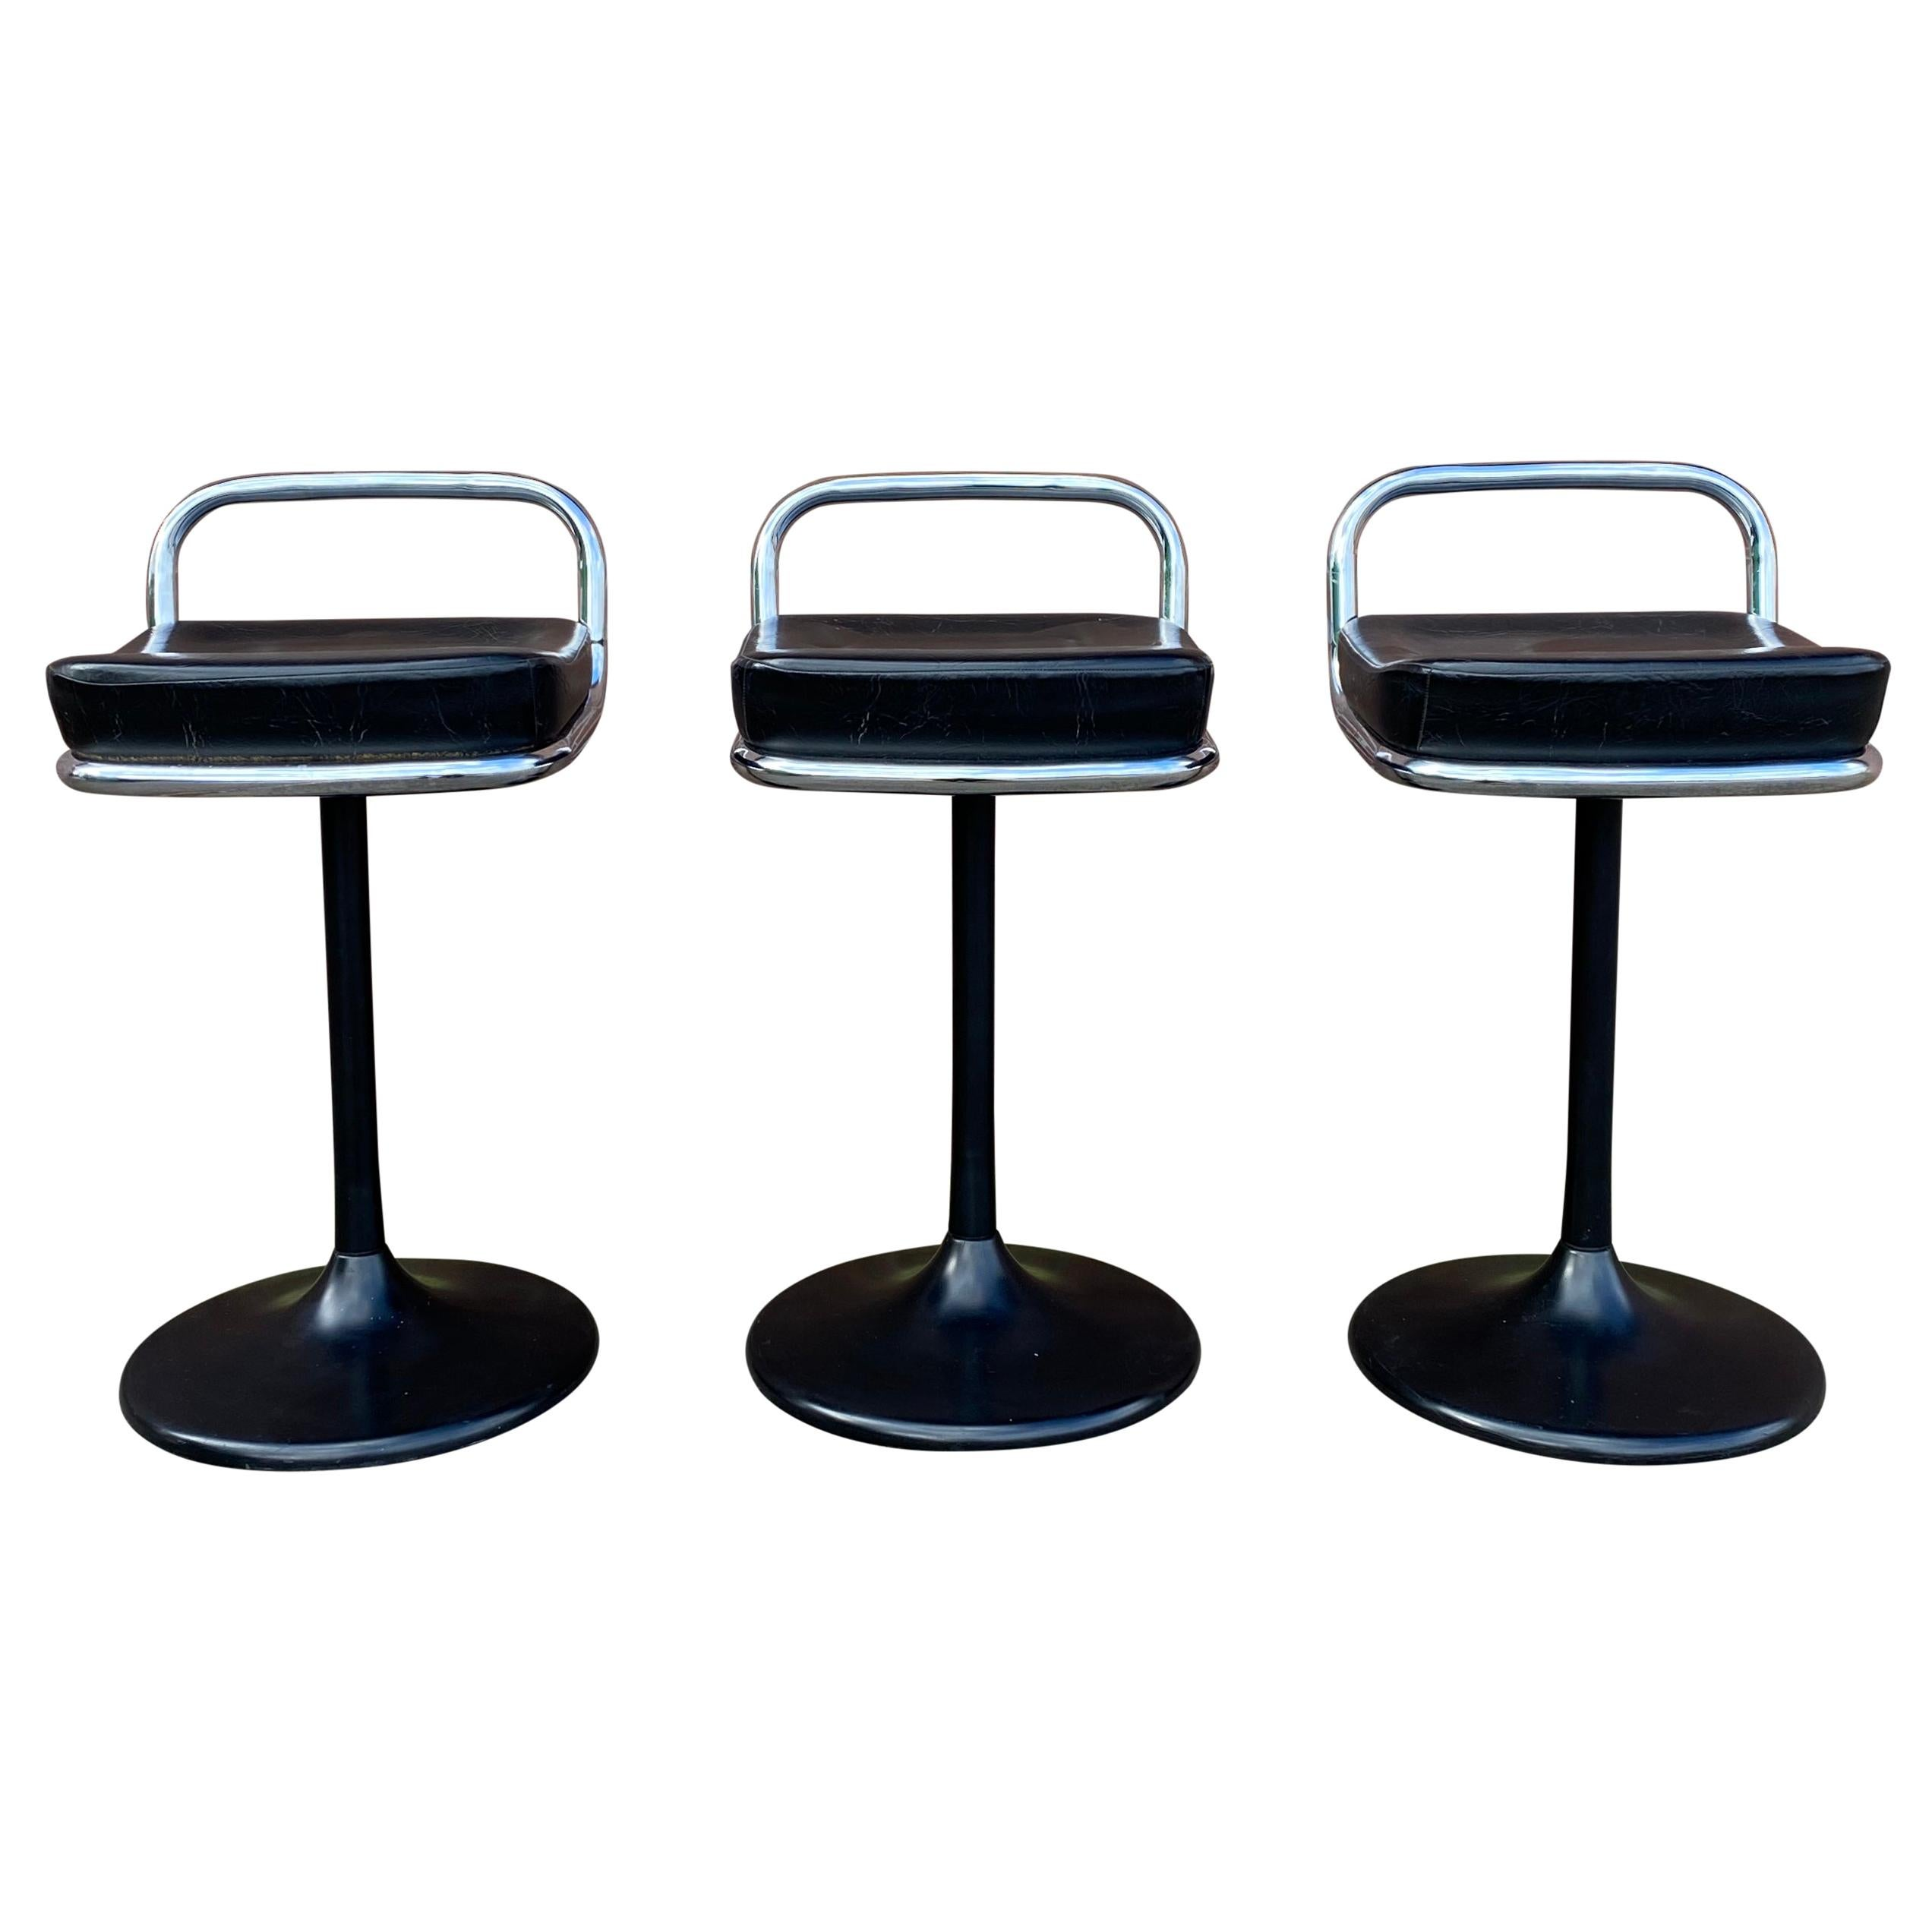 Set of Postmodern Swivel Chairs, Barstools by Lush, 1970s